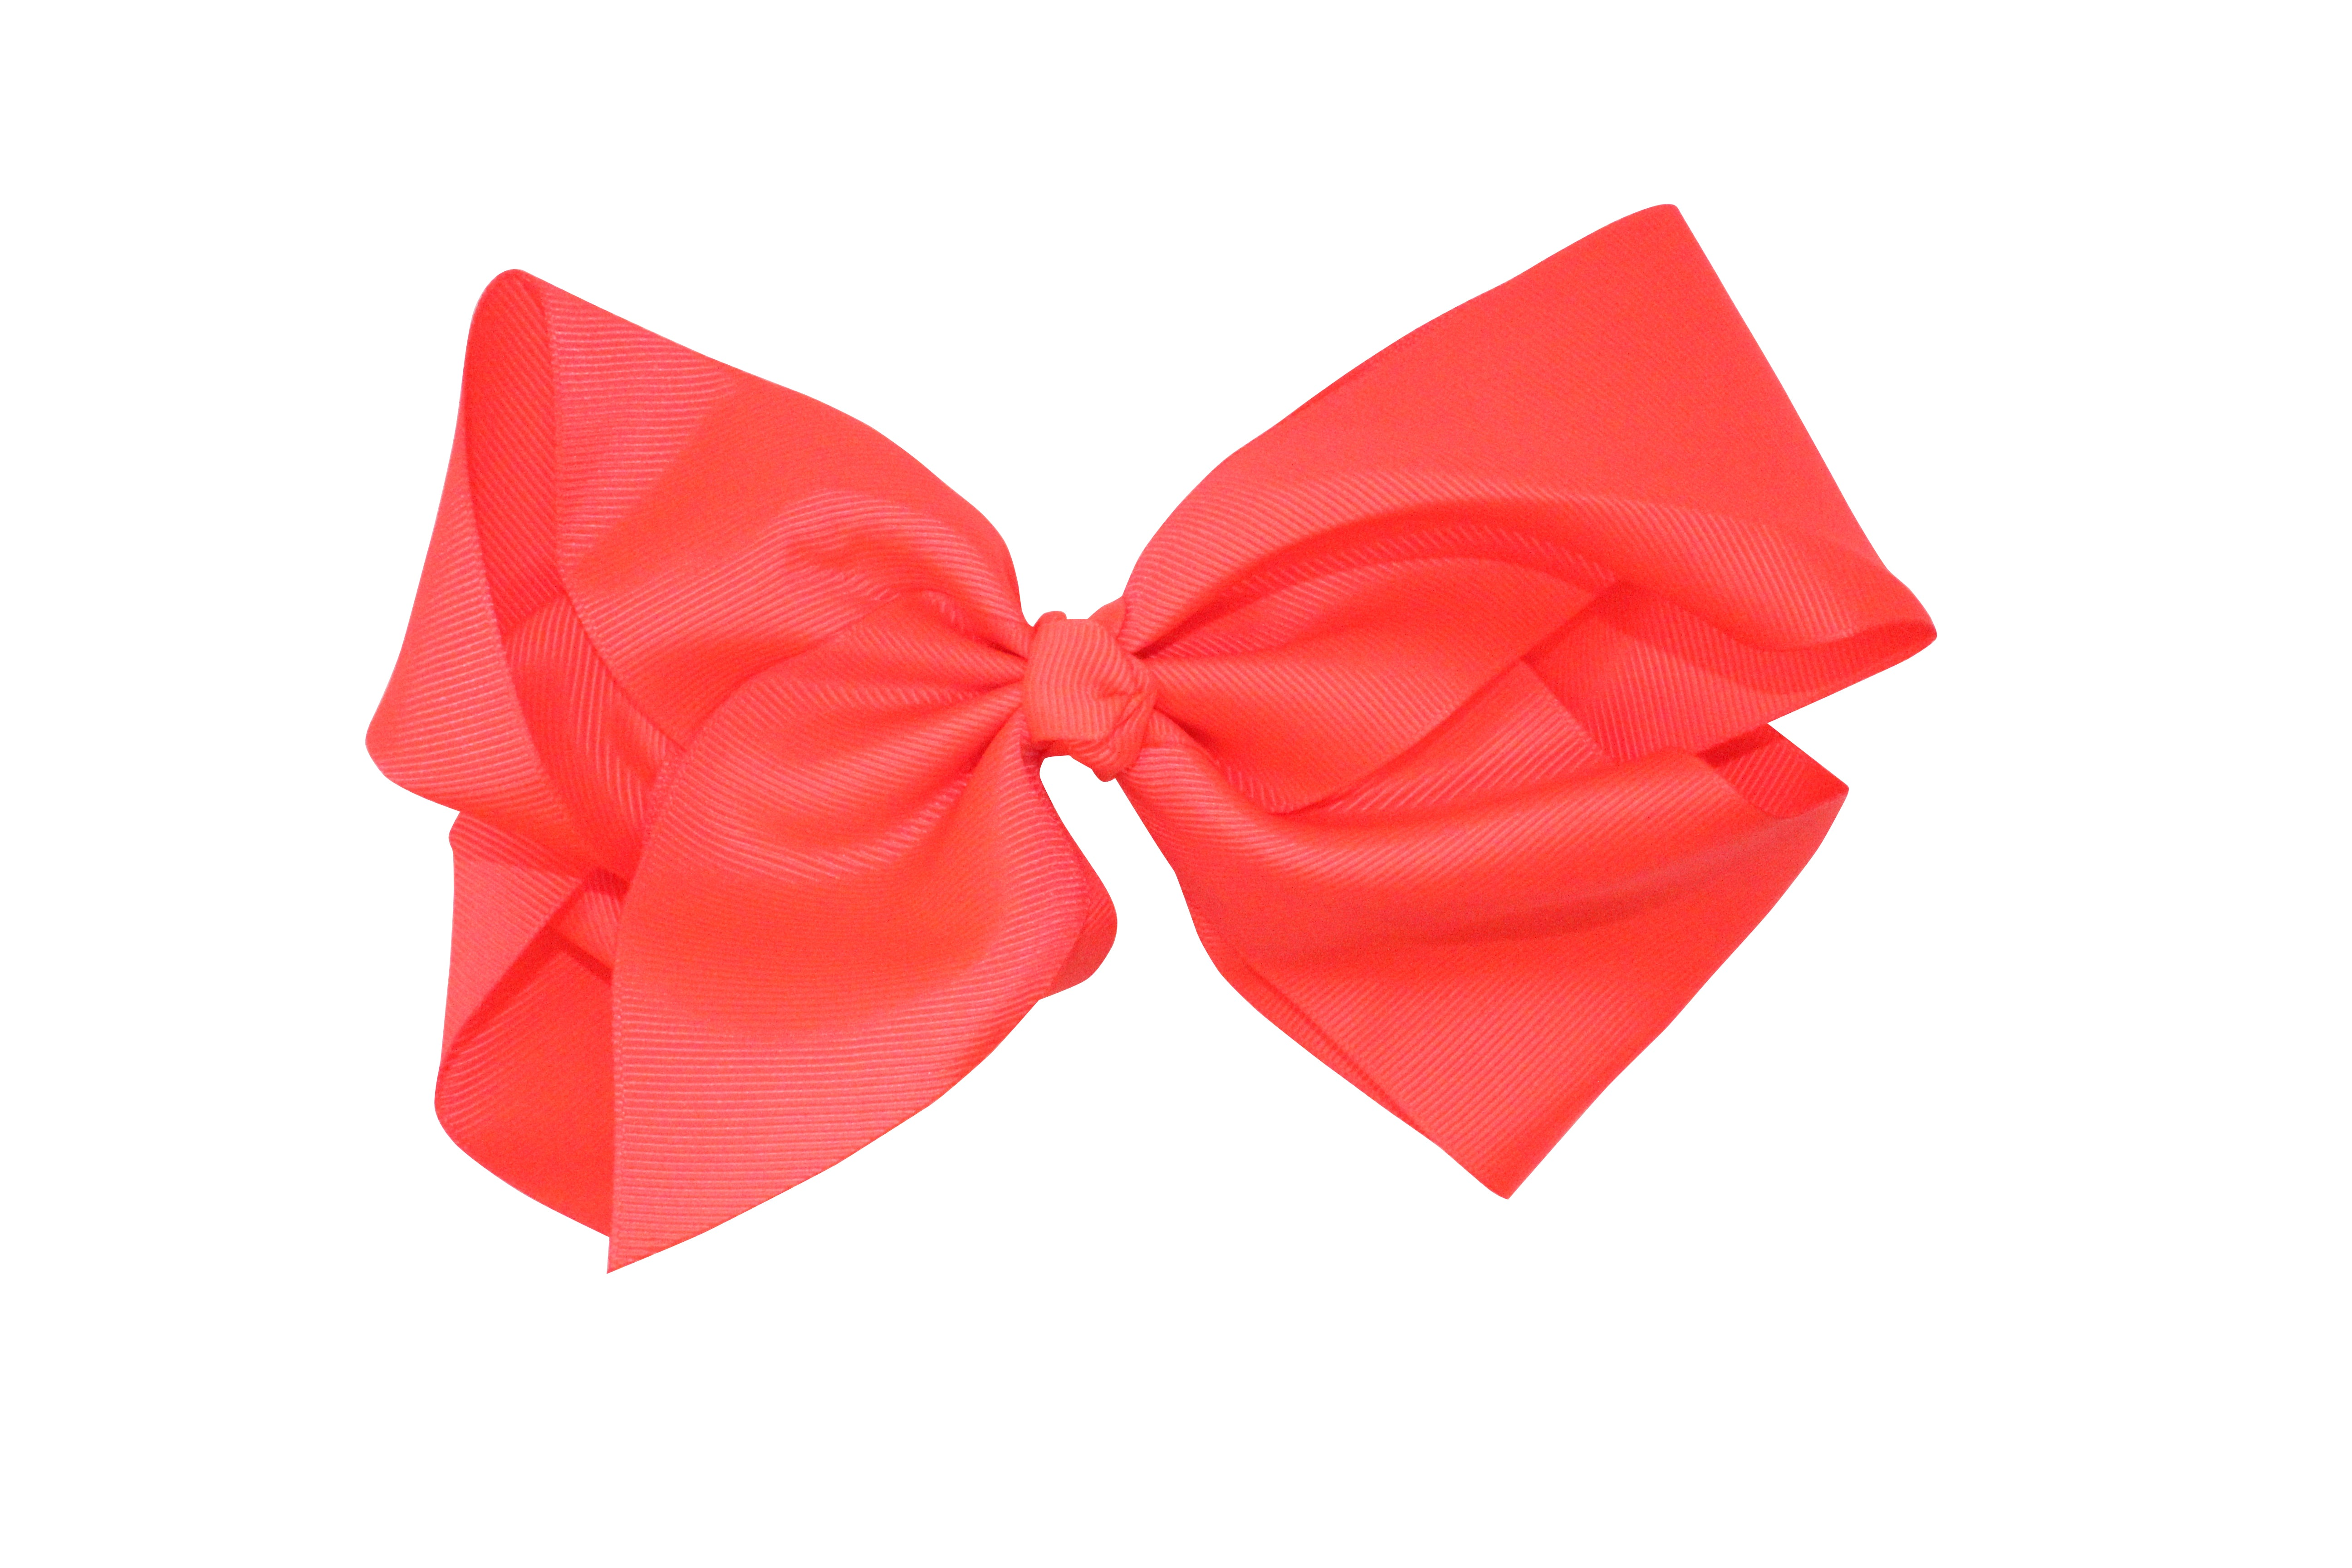 Large Jumbo Neon Colored Grosgrain Ribbon Bow Tie Hair Clip - Neon Nation